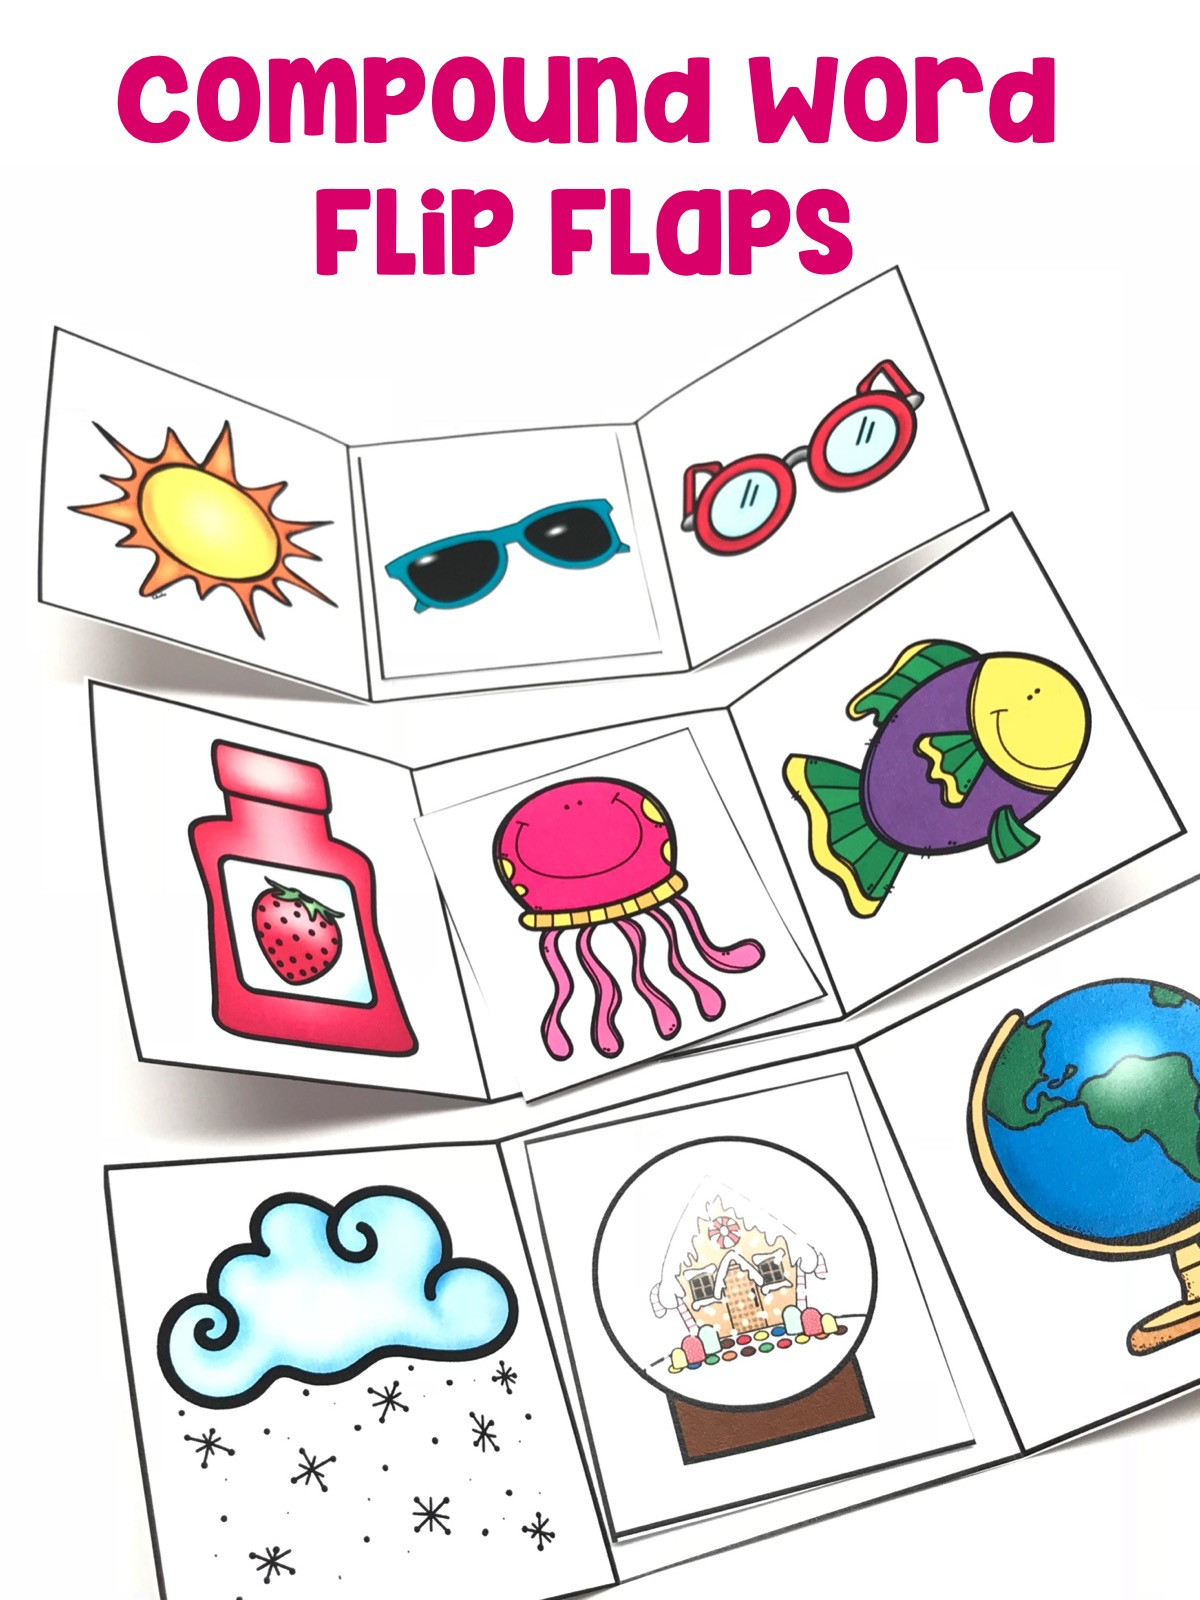 Use knowledge of the meaning of individual words to predict the meaning of compound words using the flip flap and compound words provided.